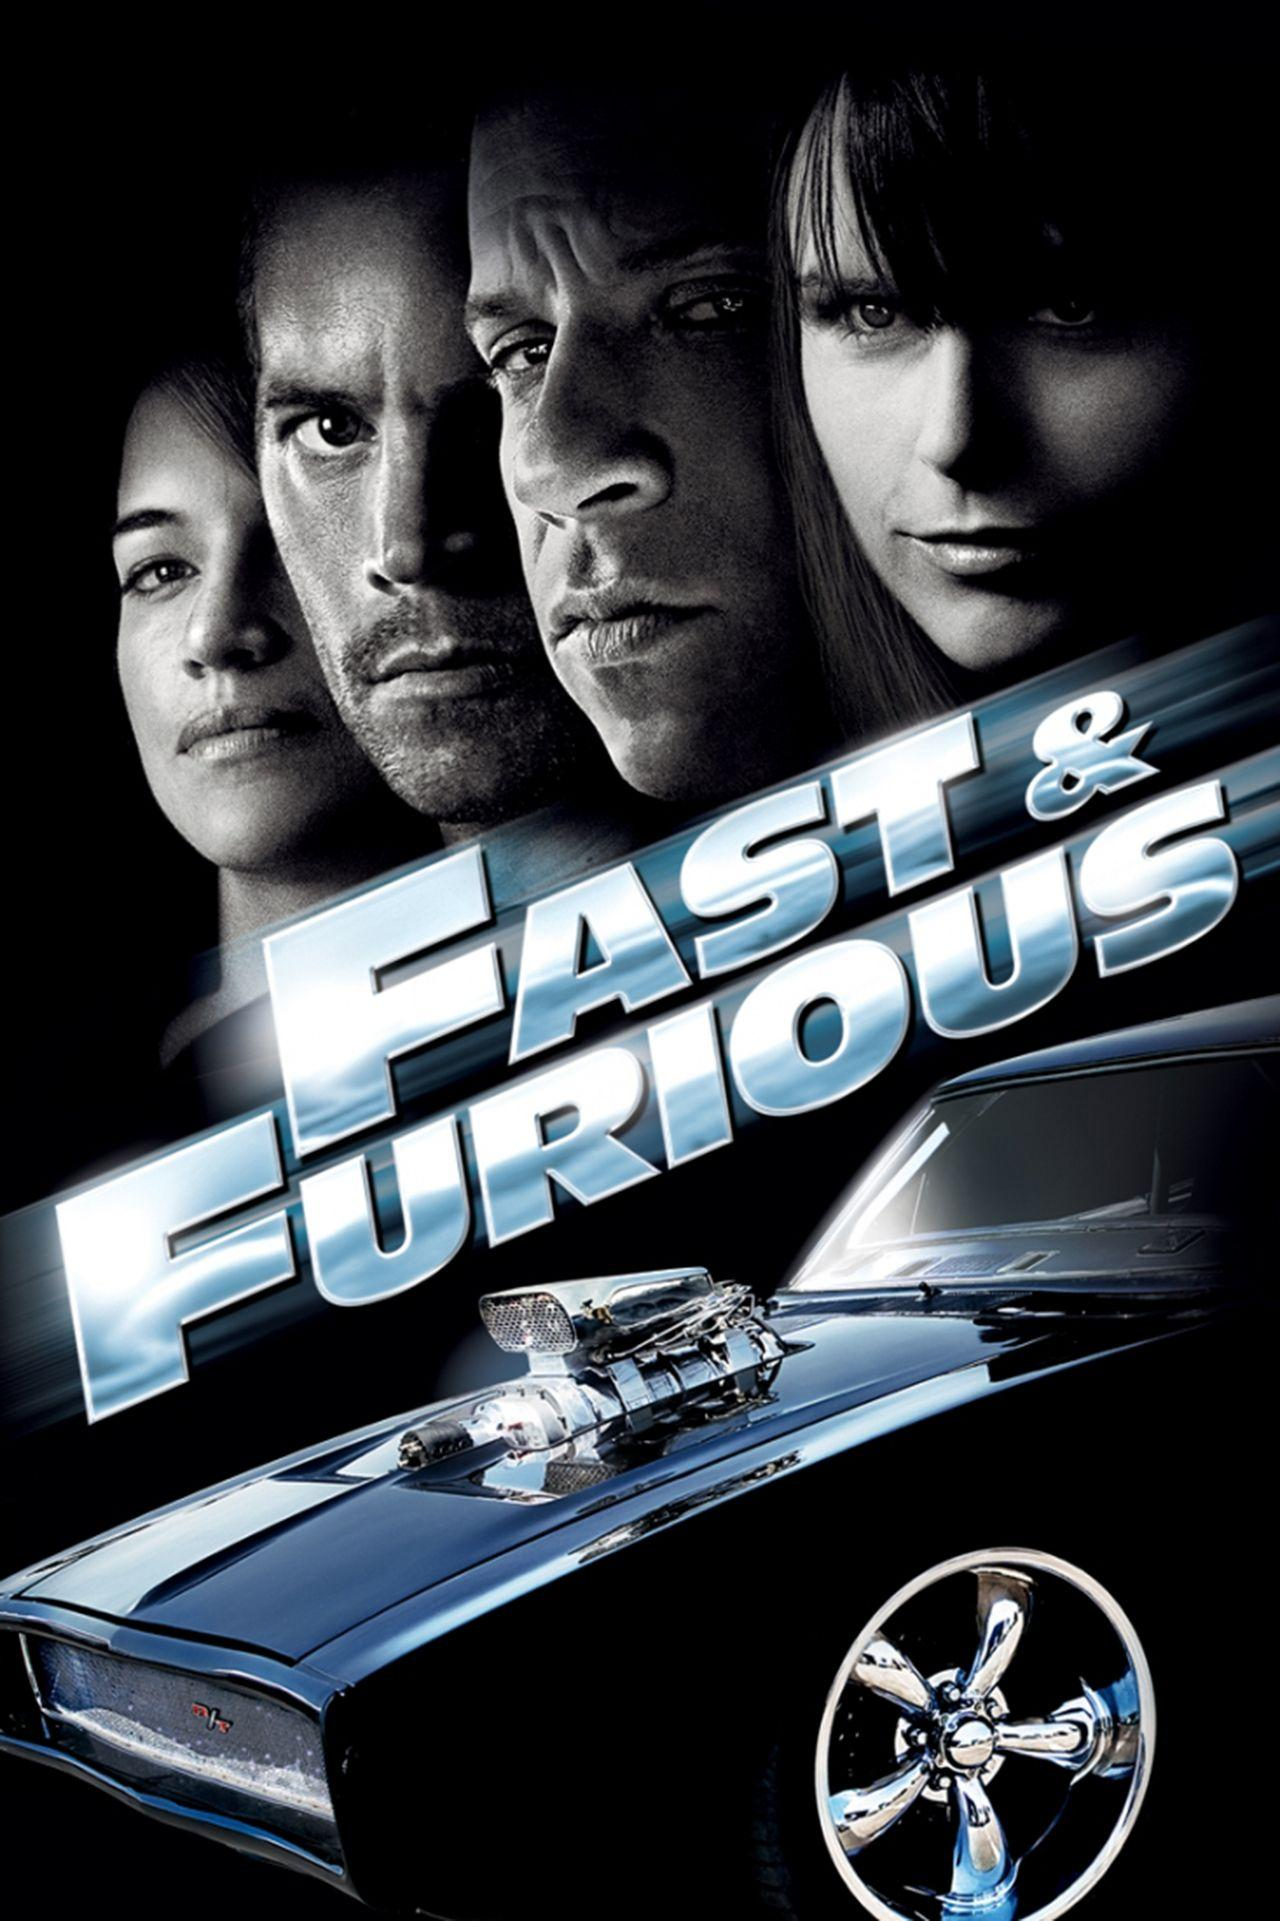 fast and furious 7 poster background 1 hd wallpapers isghdcom - Fast And Furious 7 Cars Iphone Wallpapers